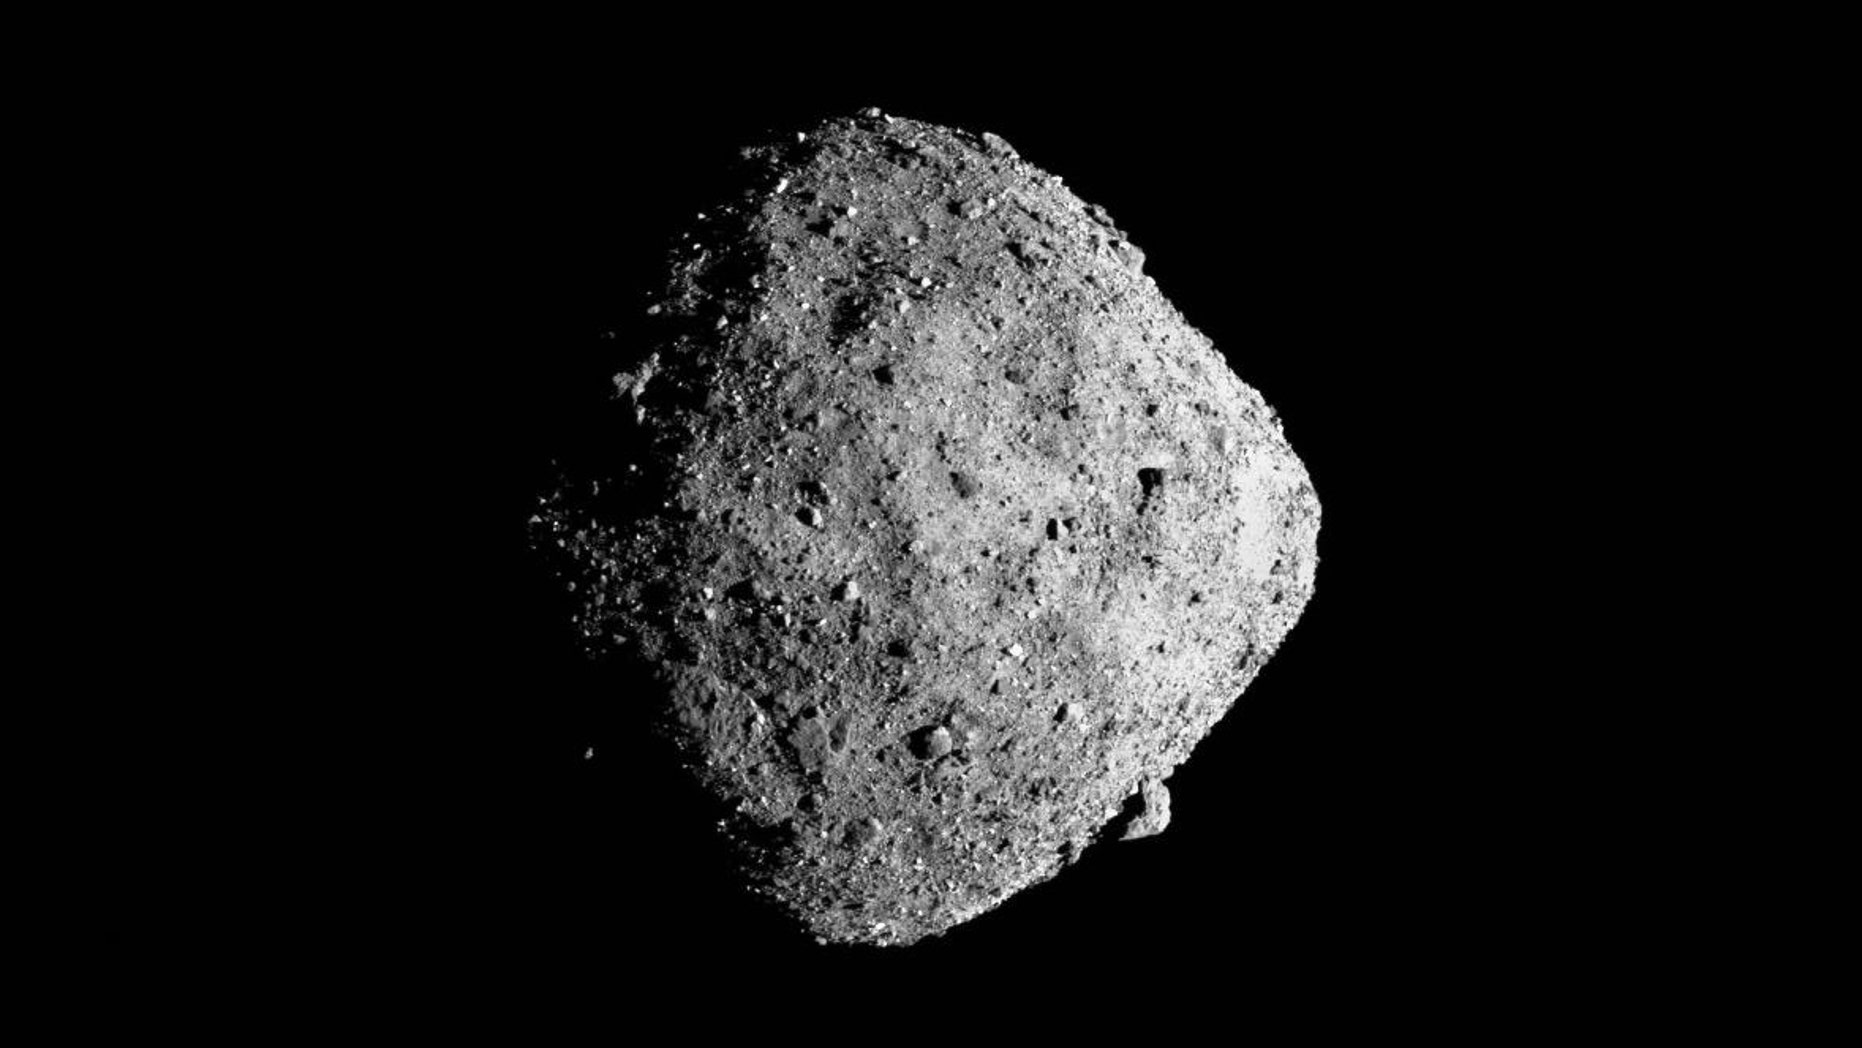 NASA's OSIRIS-REx spacecraft captured this image of the asteroid Bennu on Dec. 12, 2018. The asteroid may be a water-rich target for space miners.